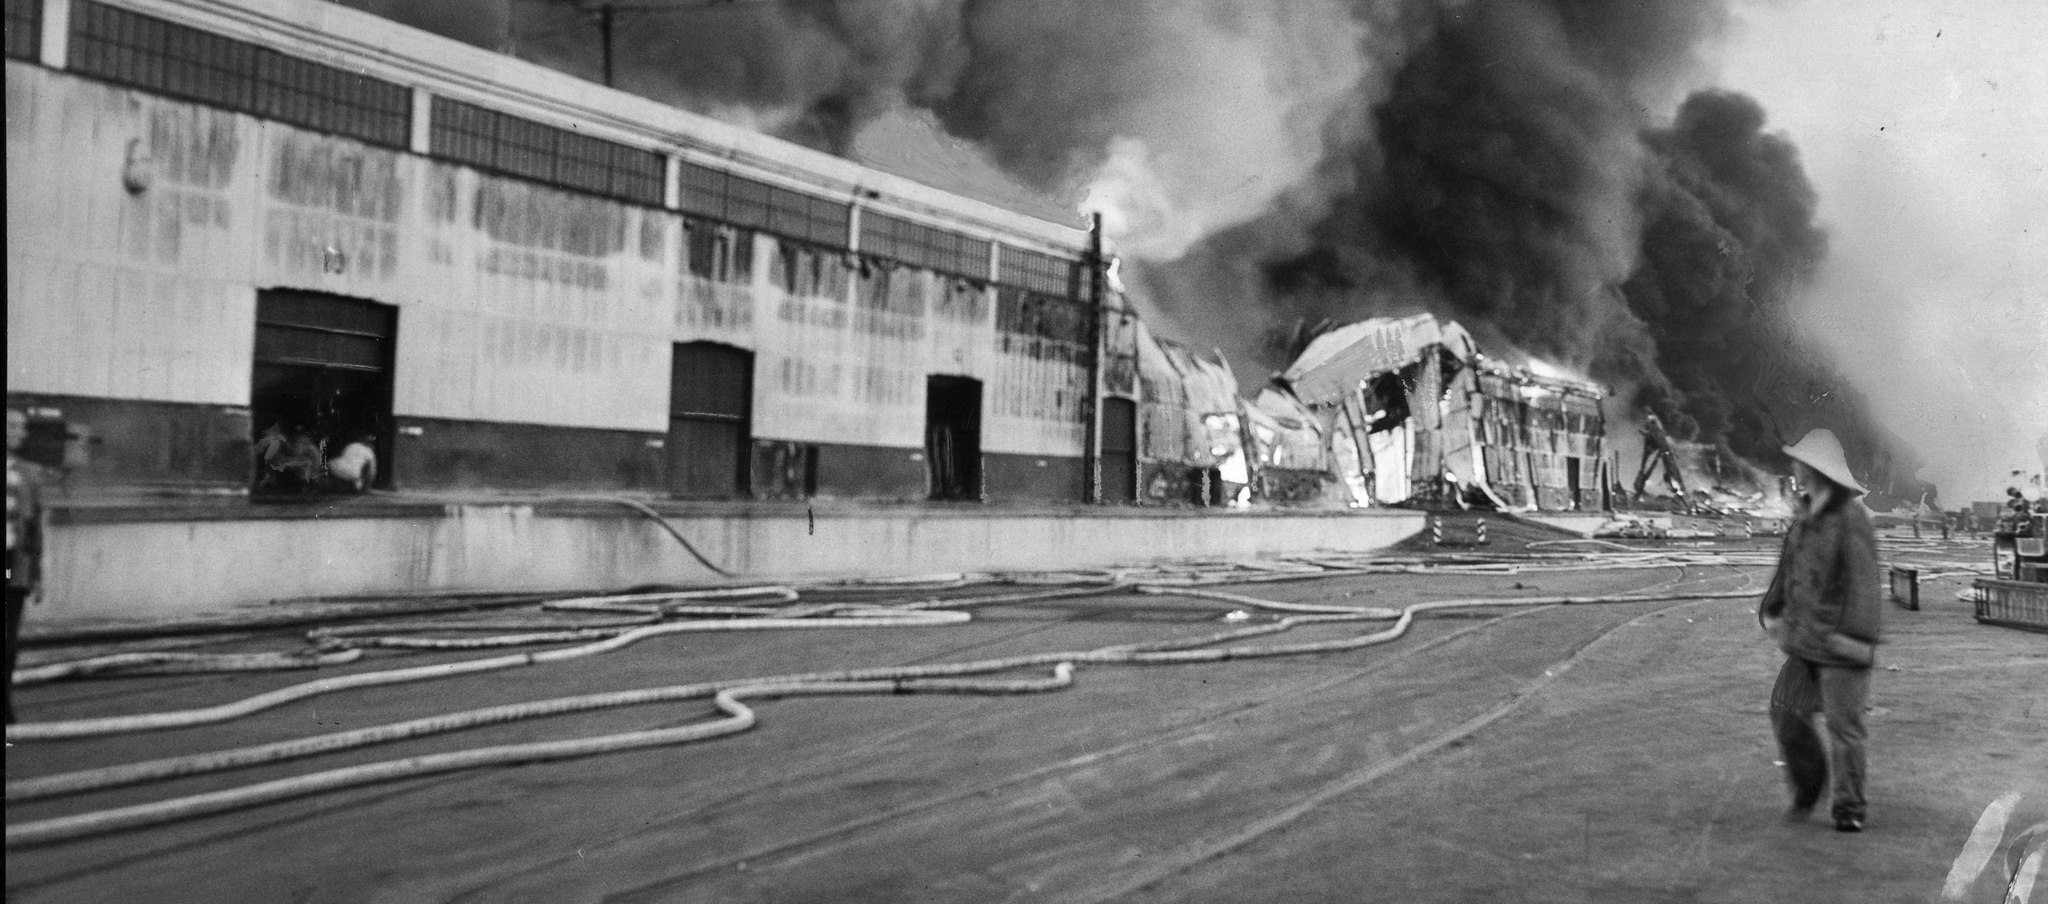 June 22, 1947: Following the explosion of the tanker Markay in Los Angeles Harbor, firese spread 200